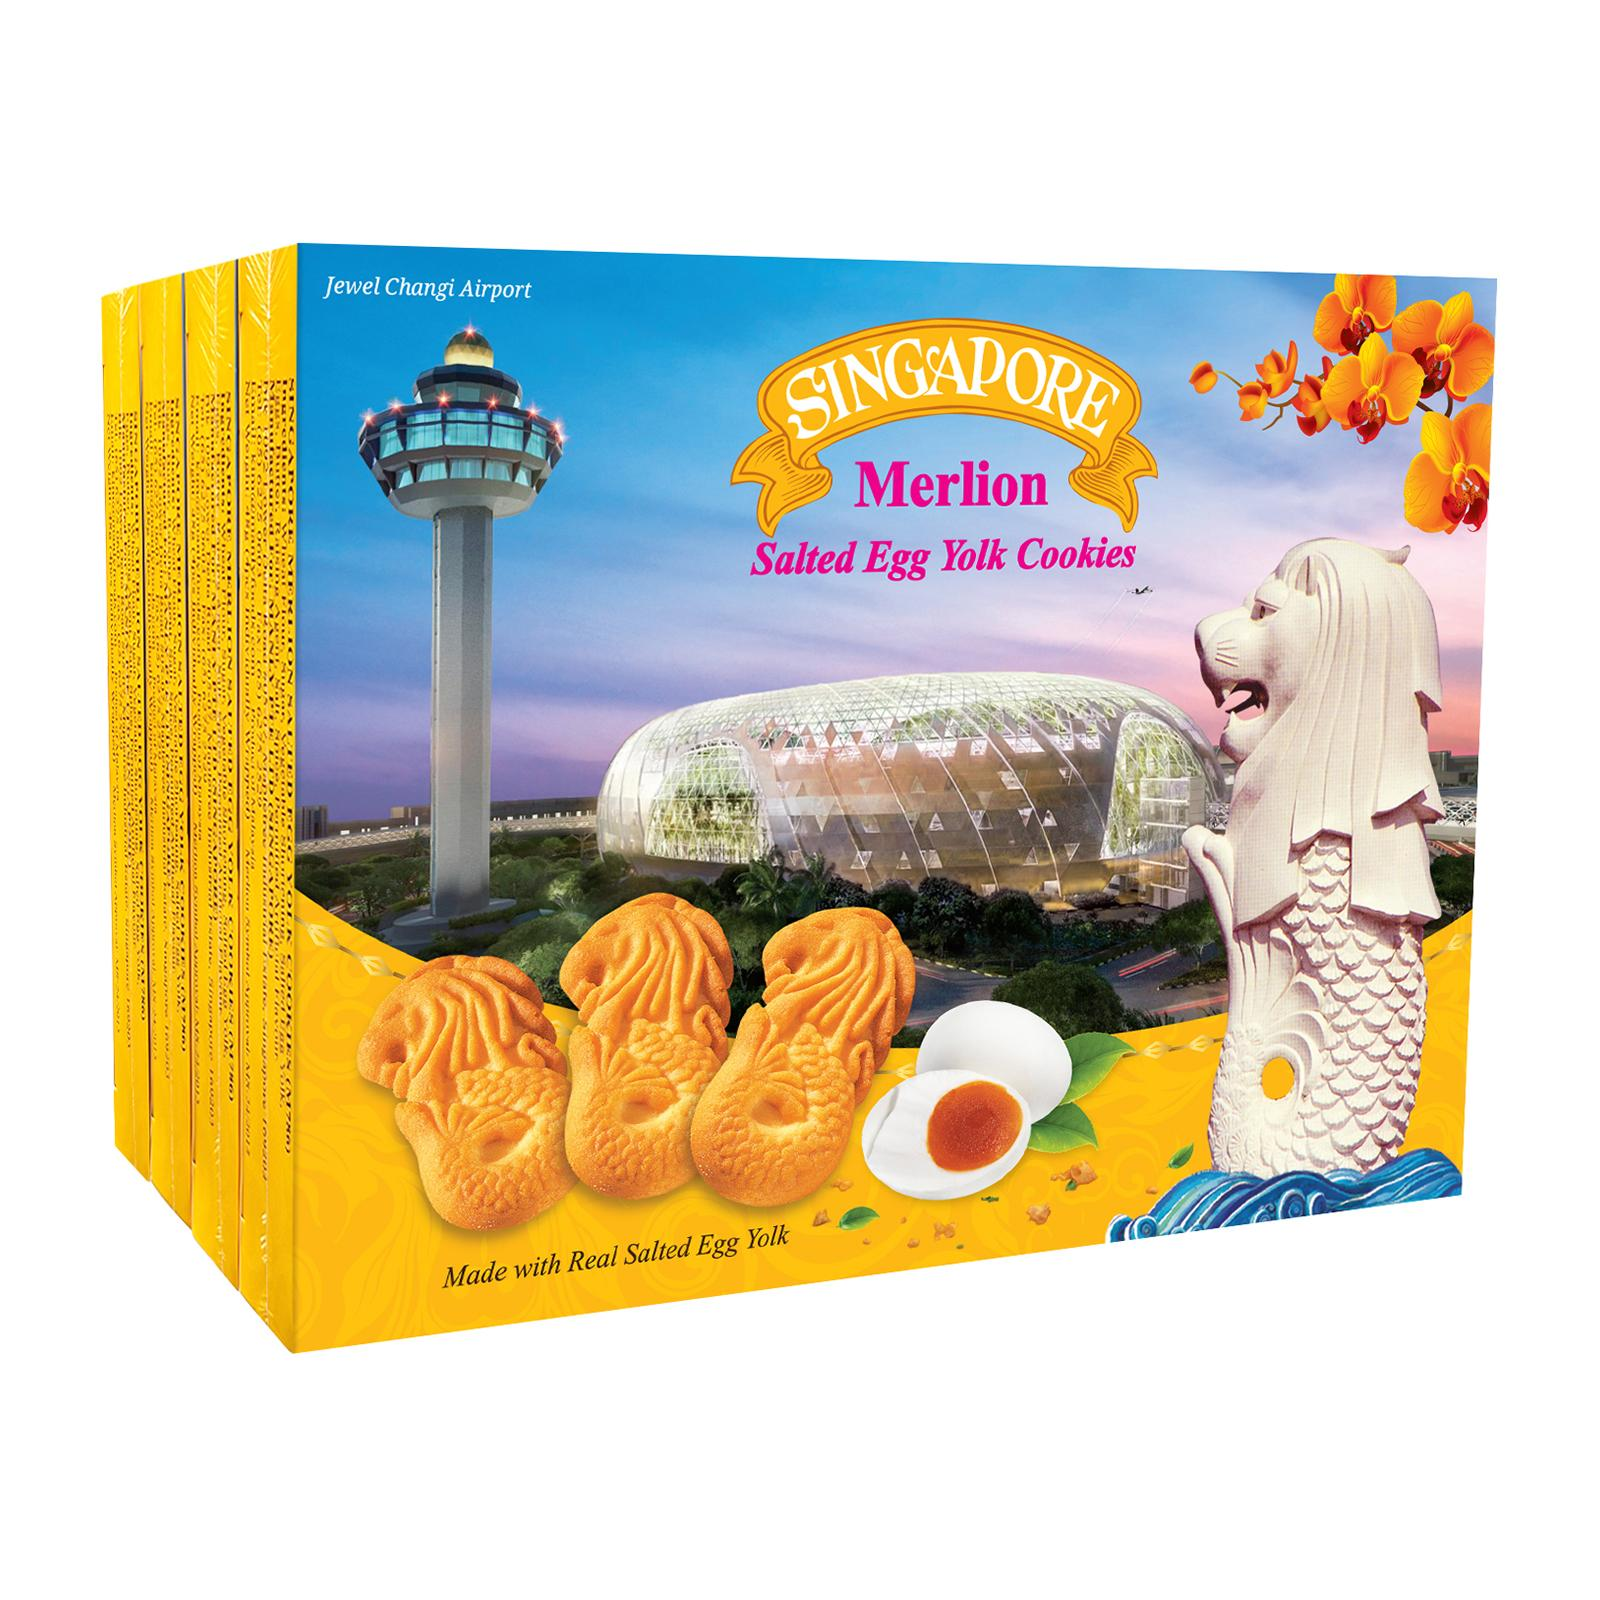 Manly (4 in 1) Merlion Salted Egg Yolk Cookies